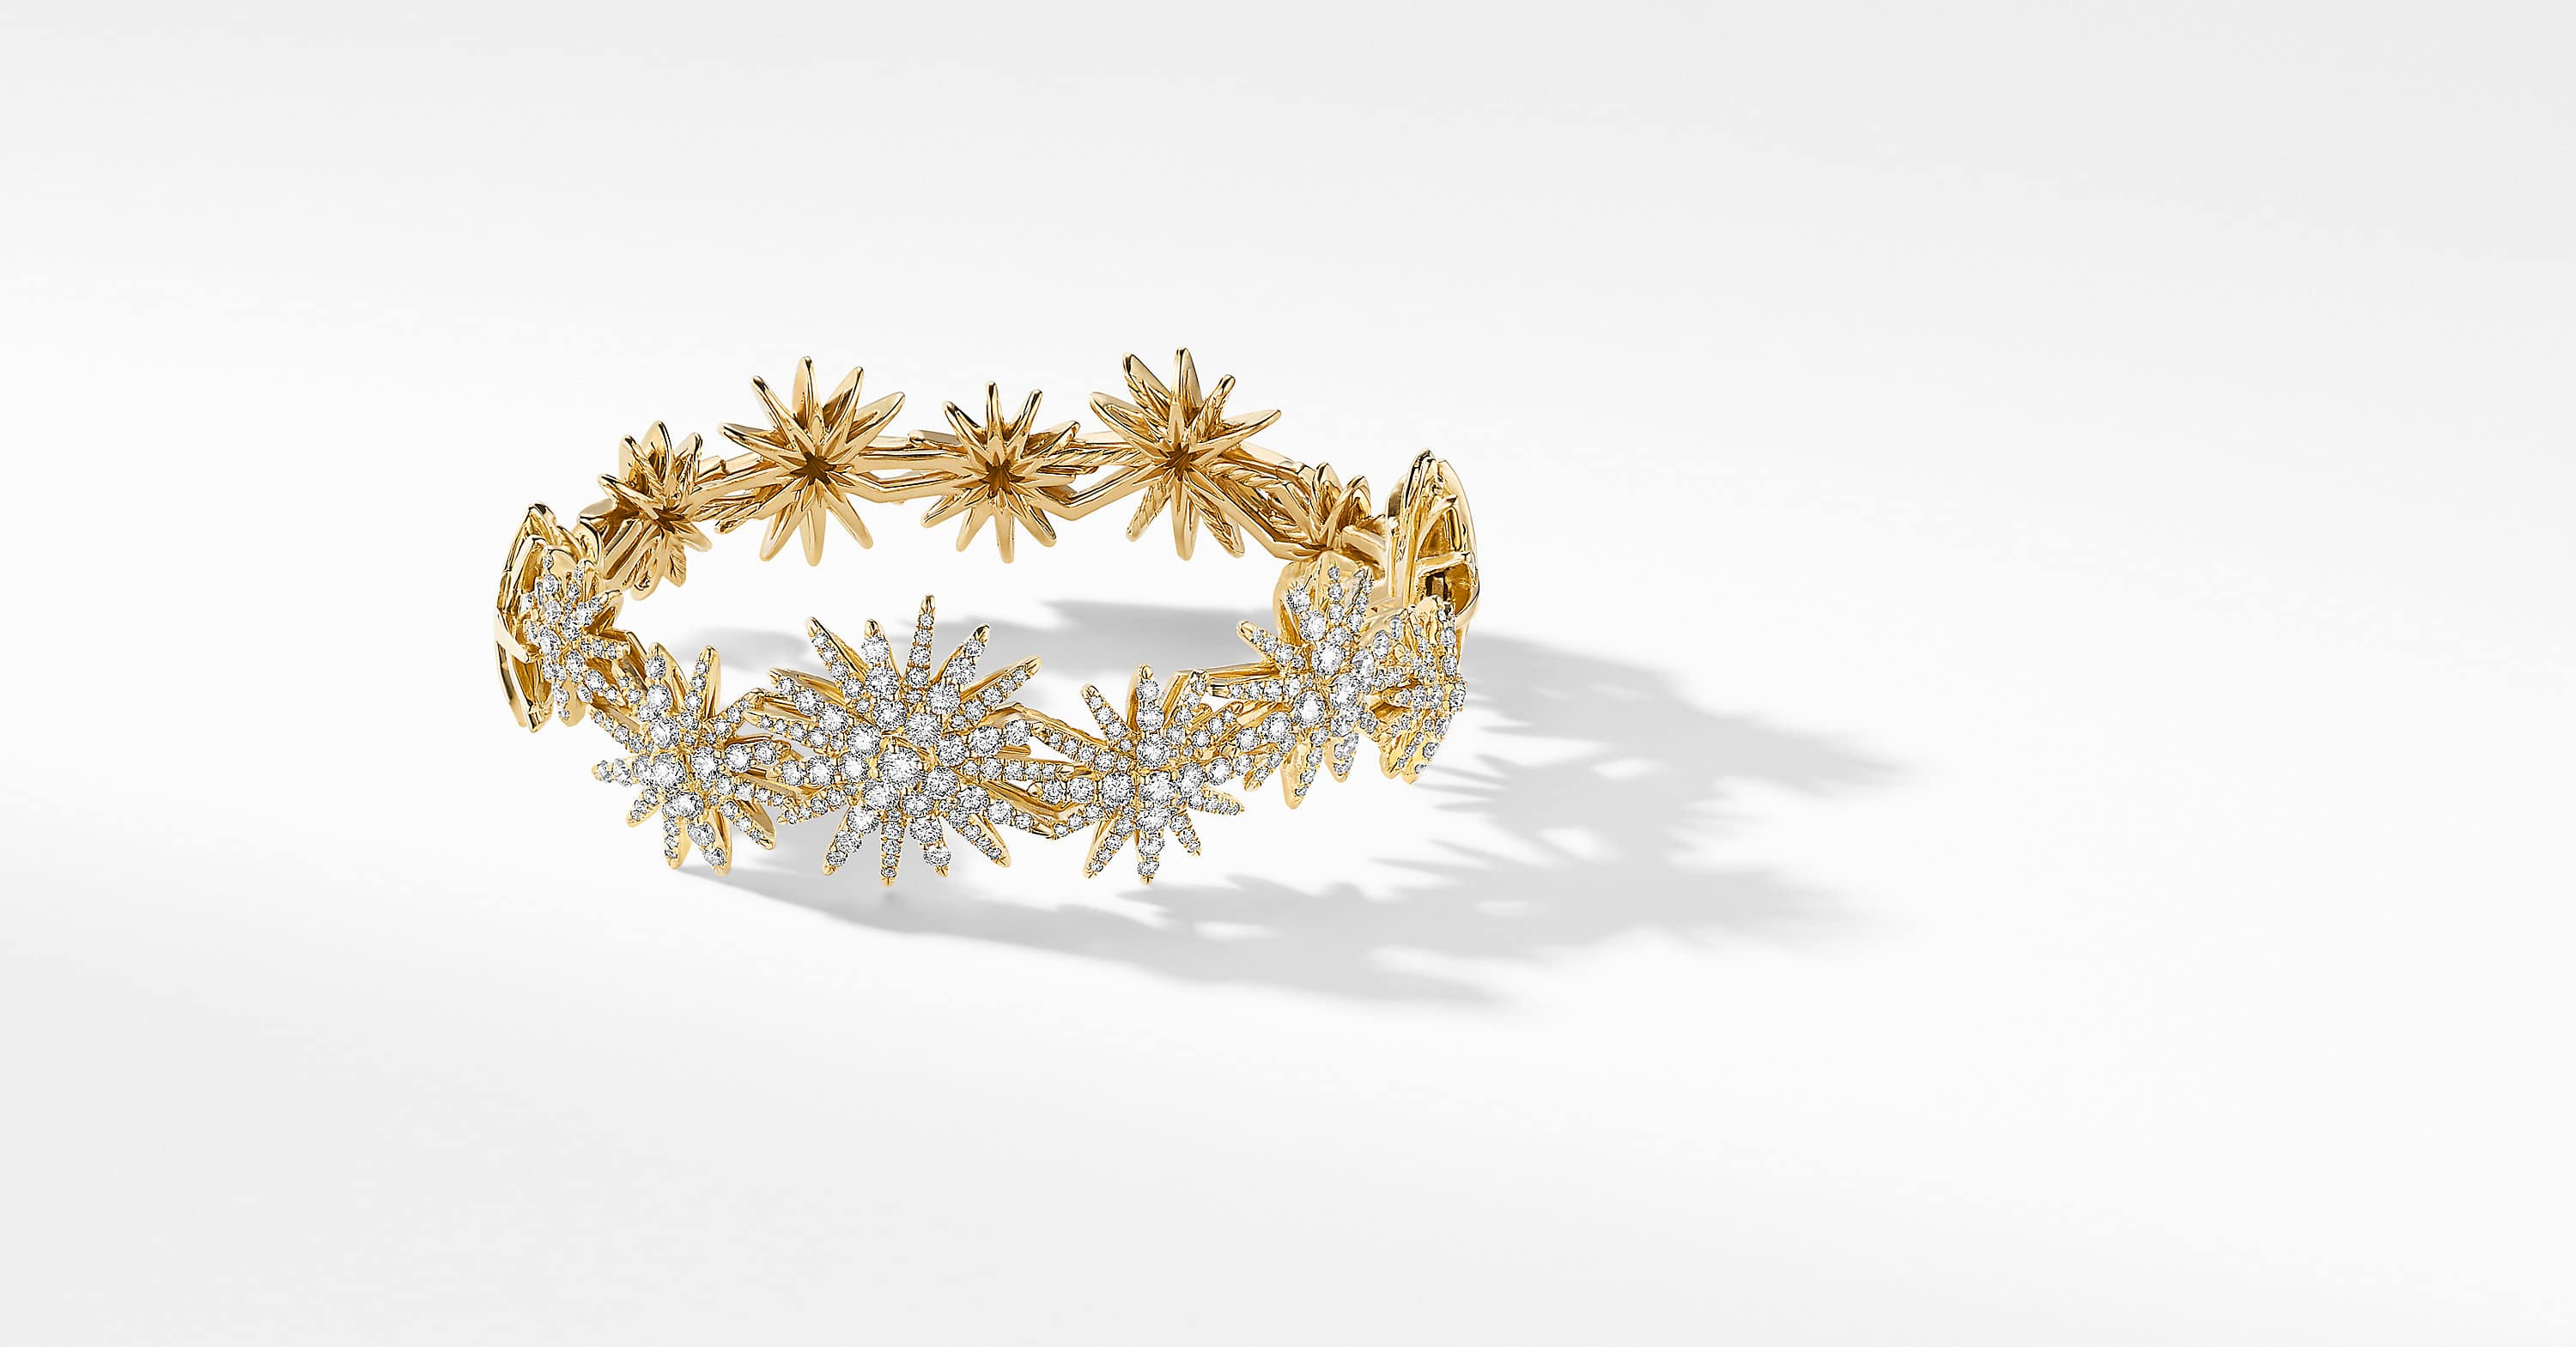 Starburst Statement Bracelet in 18K Yellow Gold with Diamonds